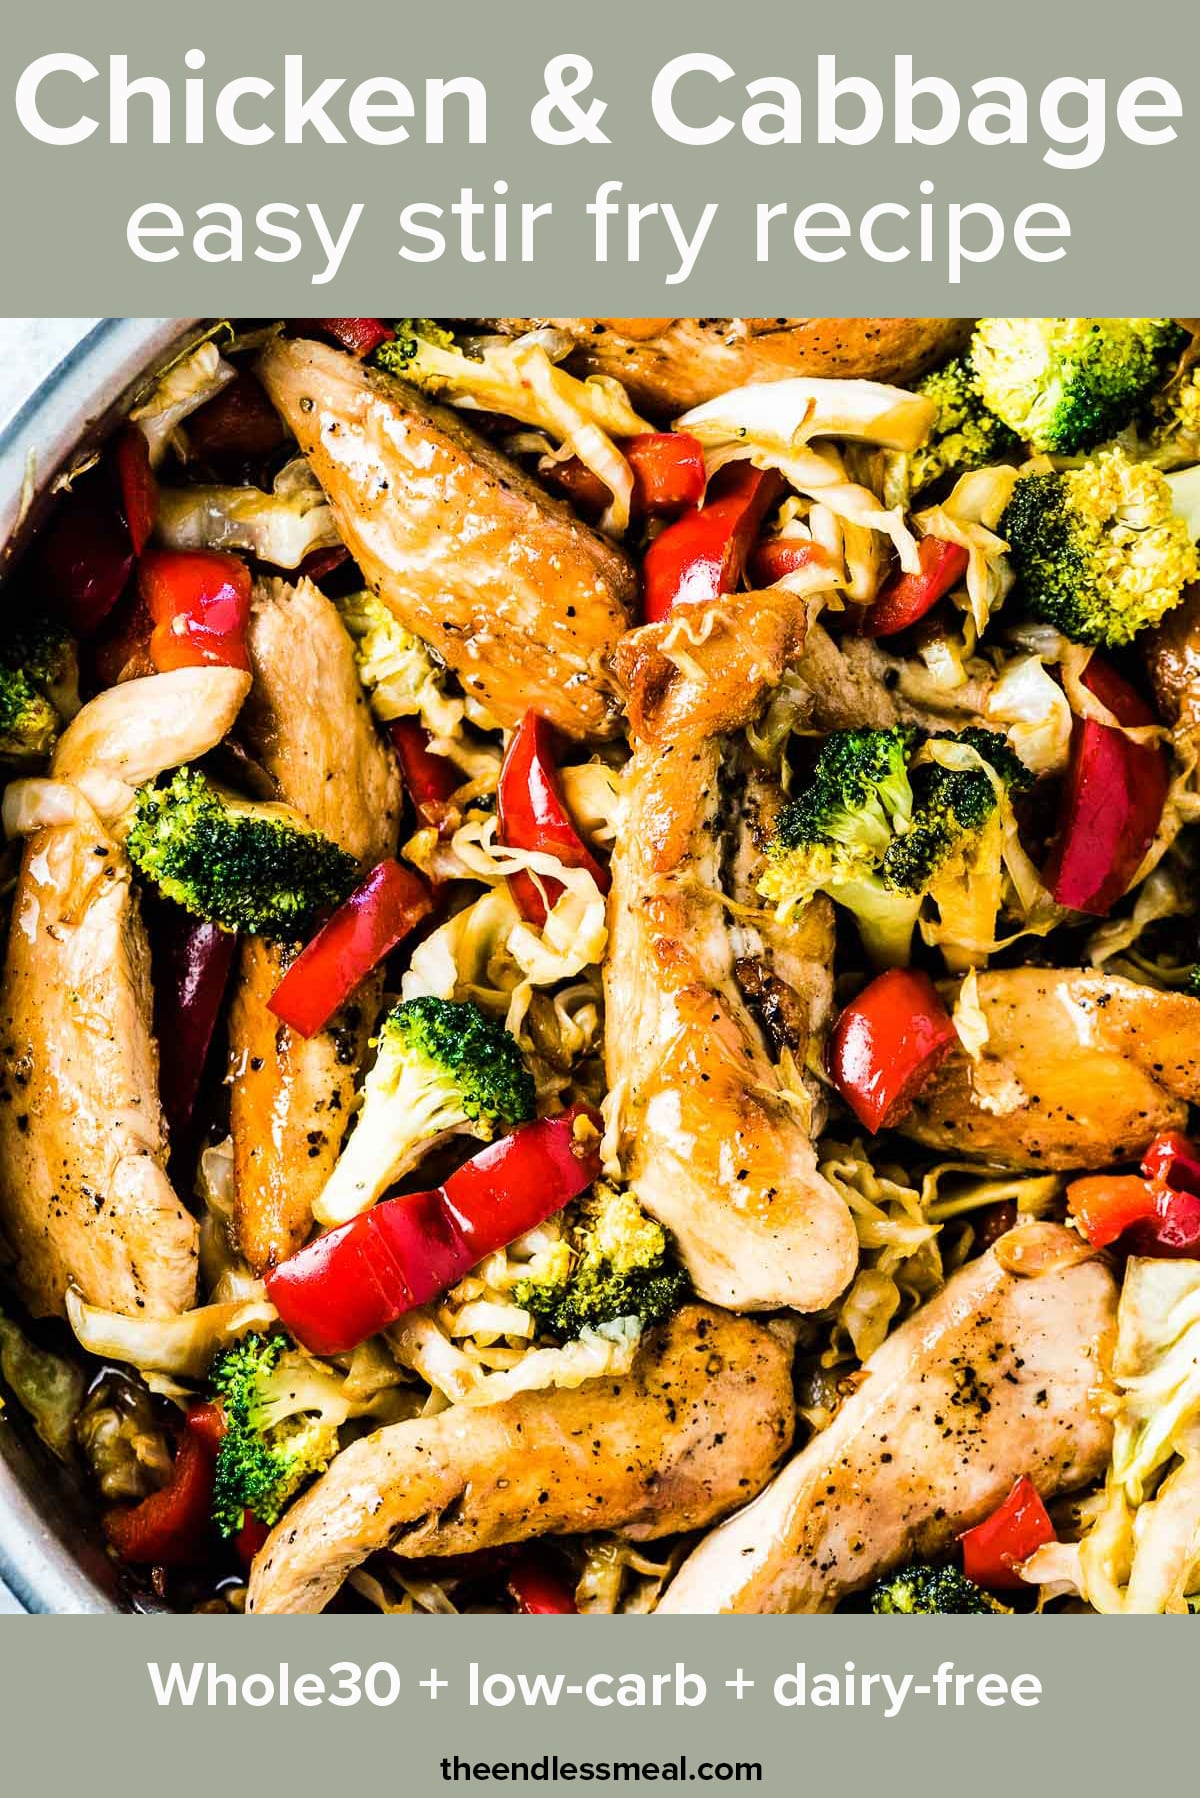 Chicken cabbage stir fry in a pan with the recipe title on top of the picture.